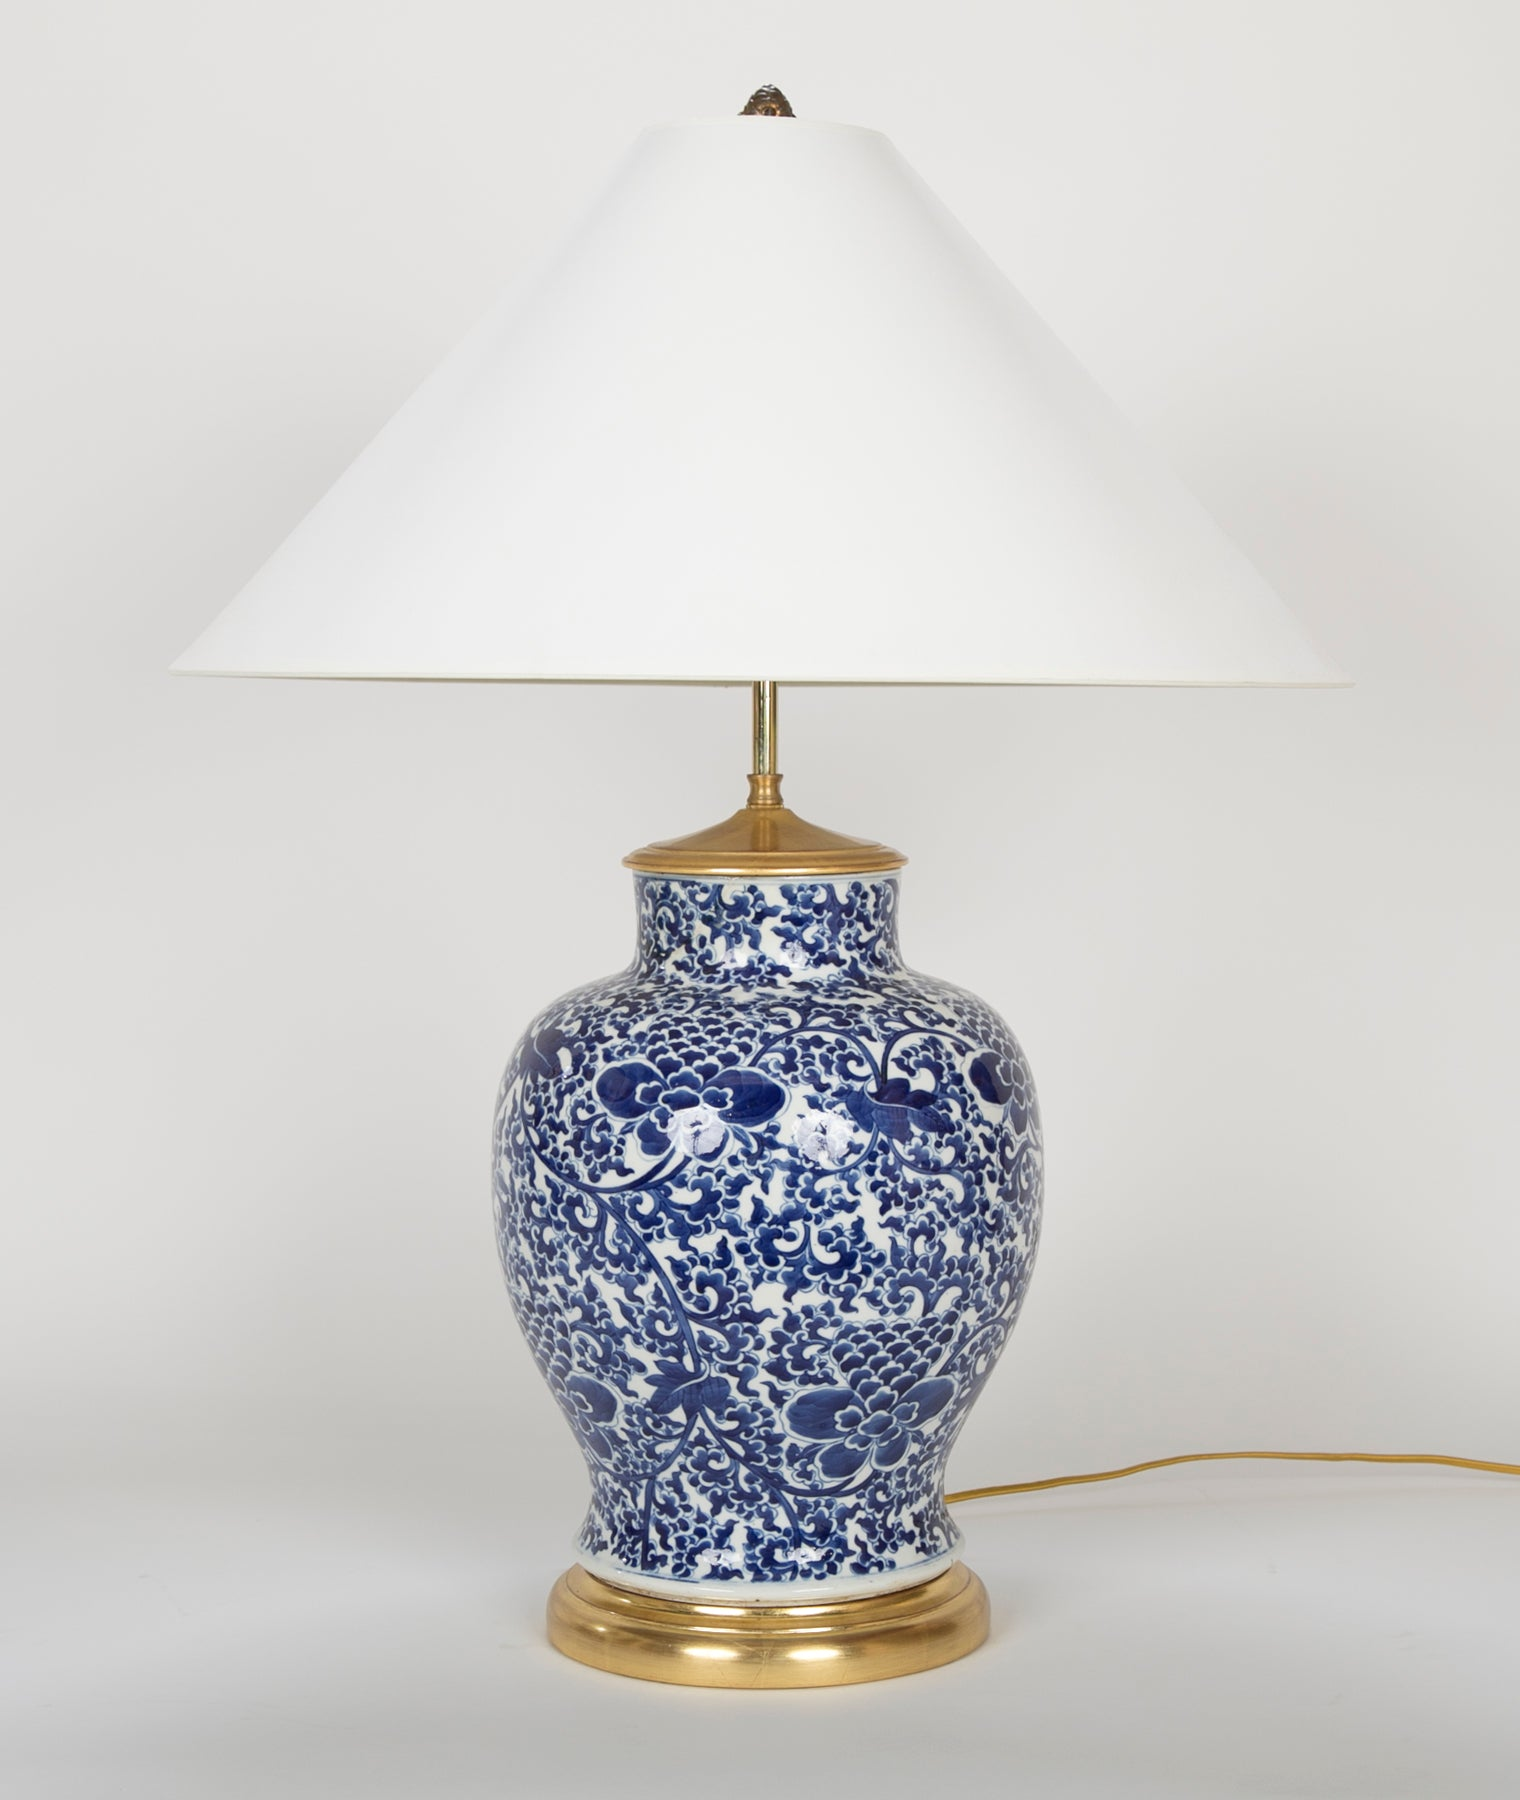 19th Century Chinese Blue & White Porcelain Vase now a Lamp